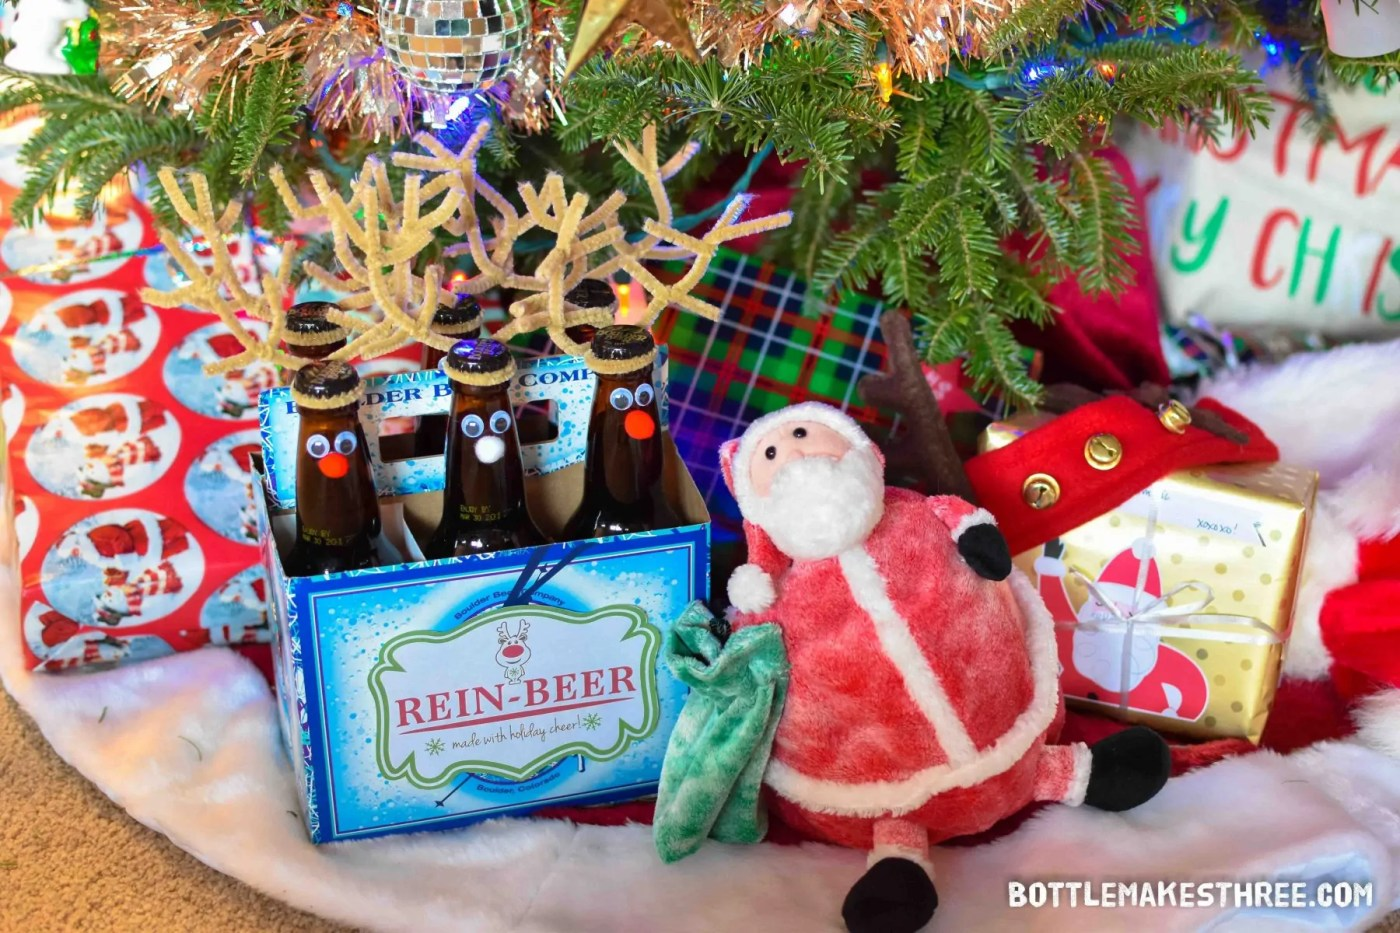 A Procrastinators Guide to Great Last-Minute Beer Gifts | BottleMakesThree.com